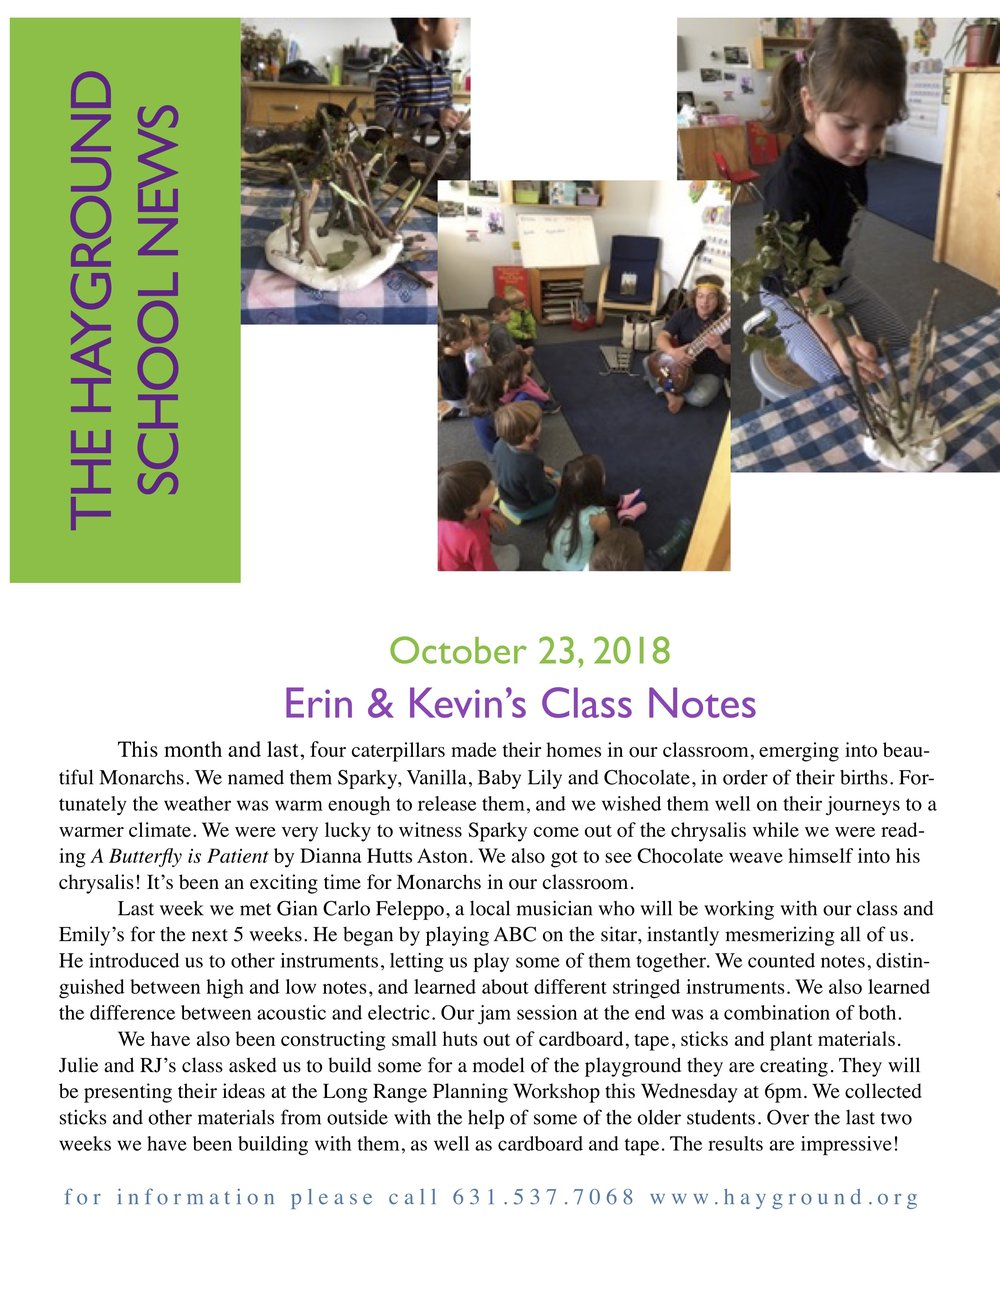 E and K's class notes october 23 2018 copy.jpg